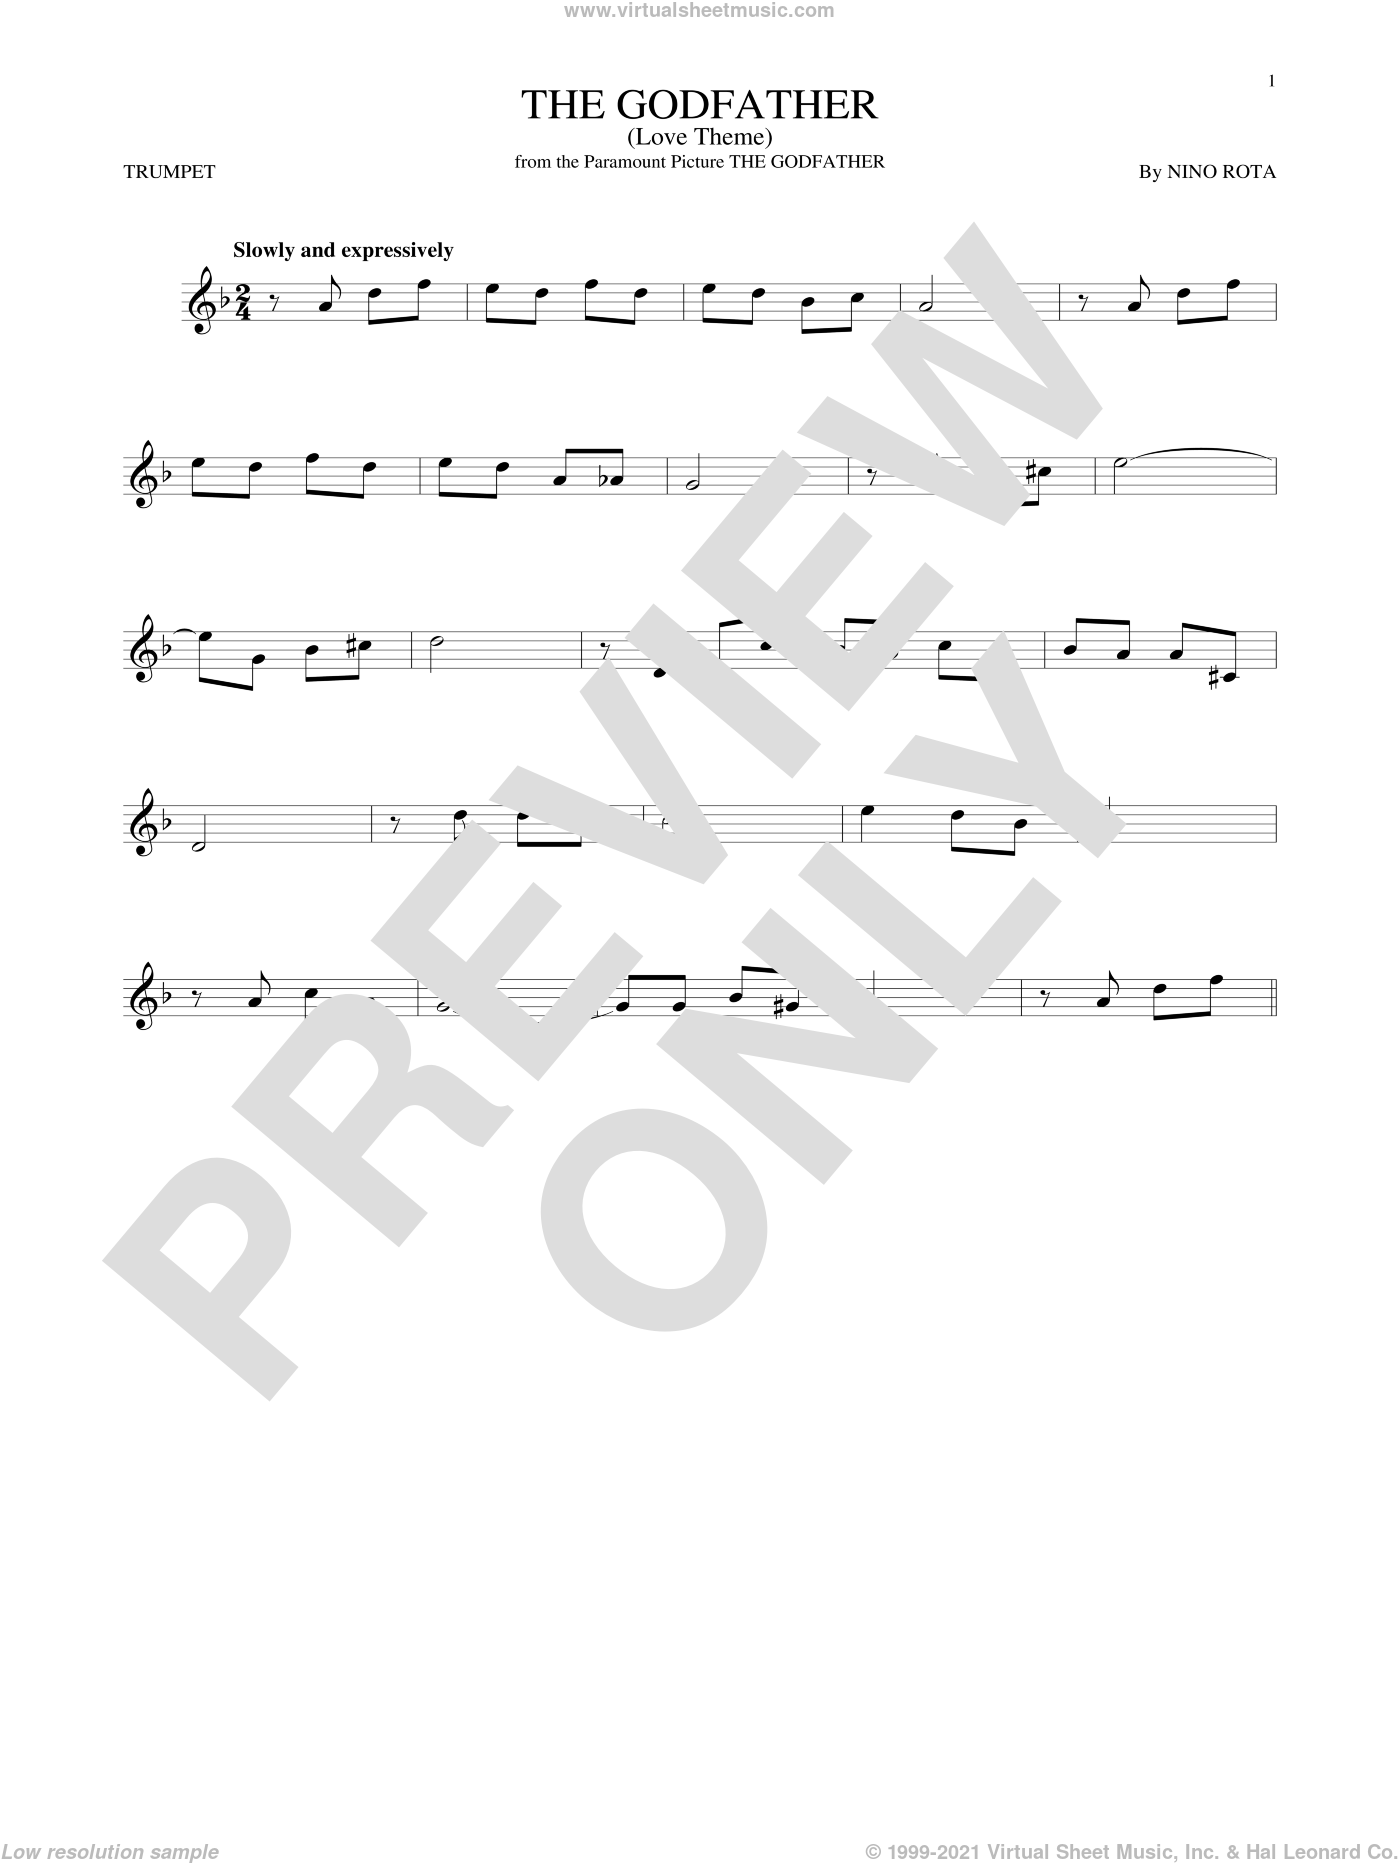 The Godfather (Love Theme) sheet music for trumpet solo by Nino Rota, intermediate skill level